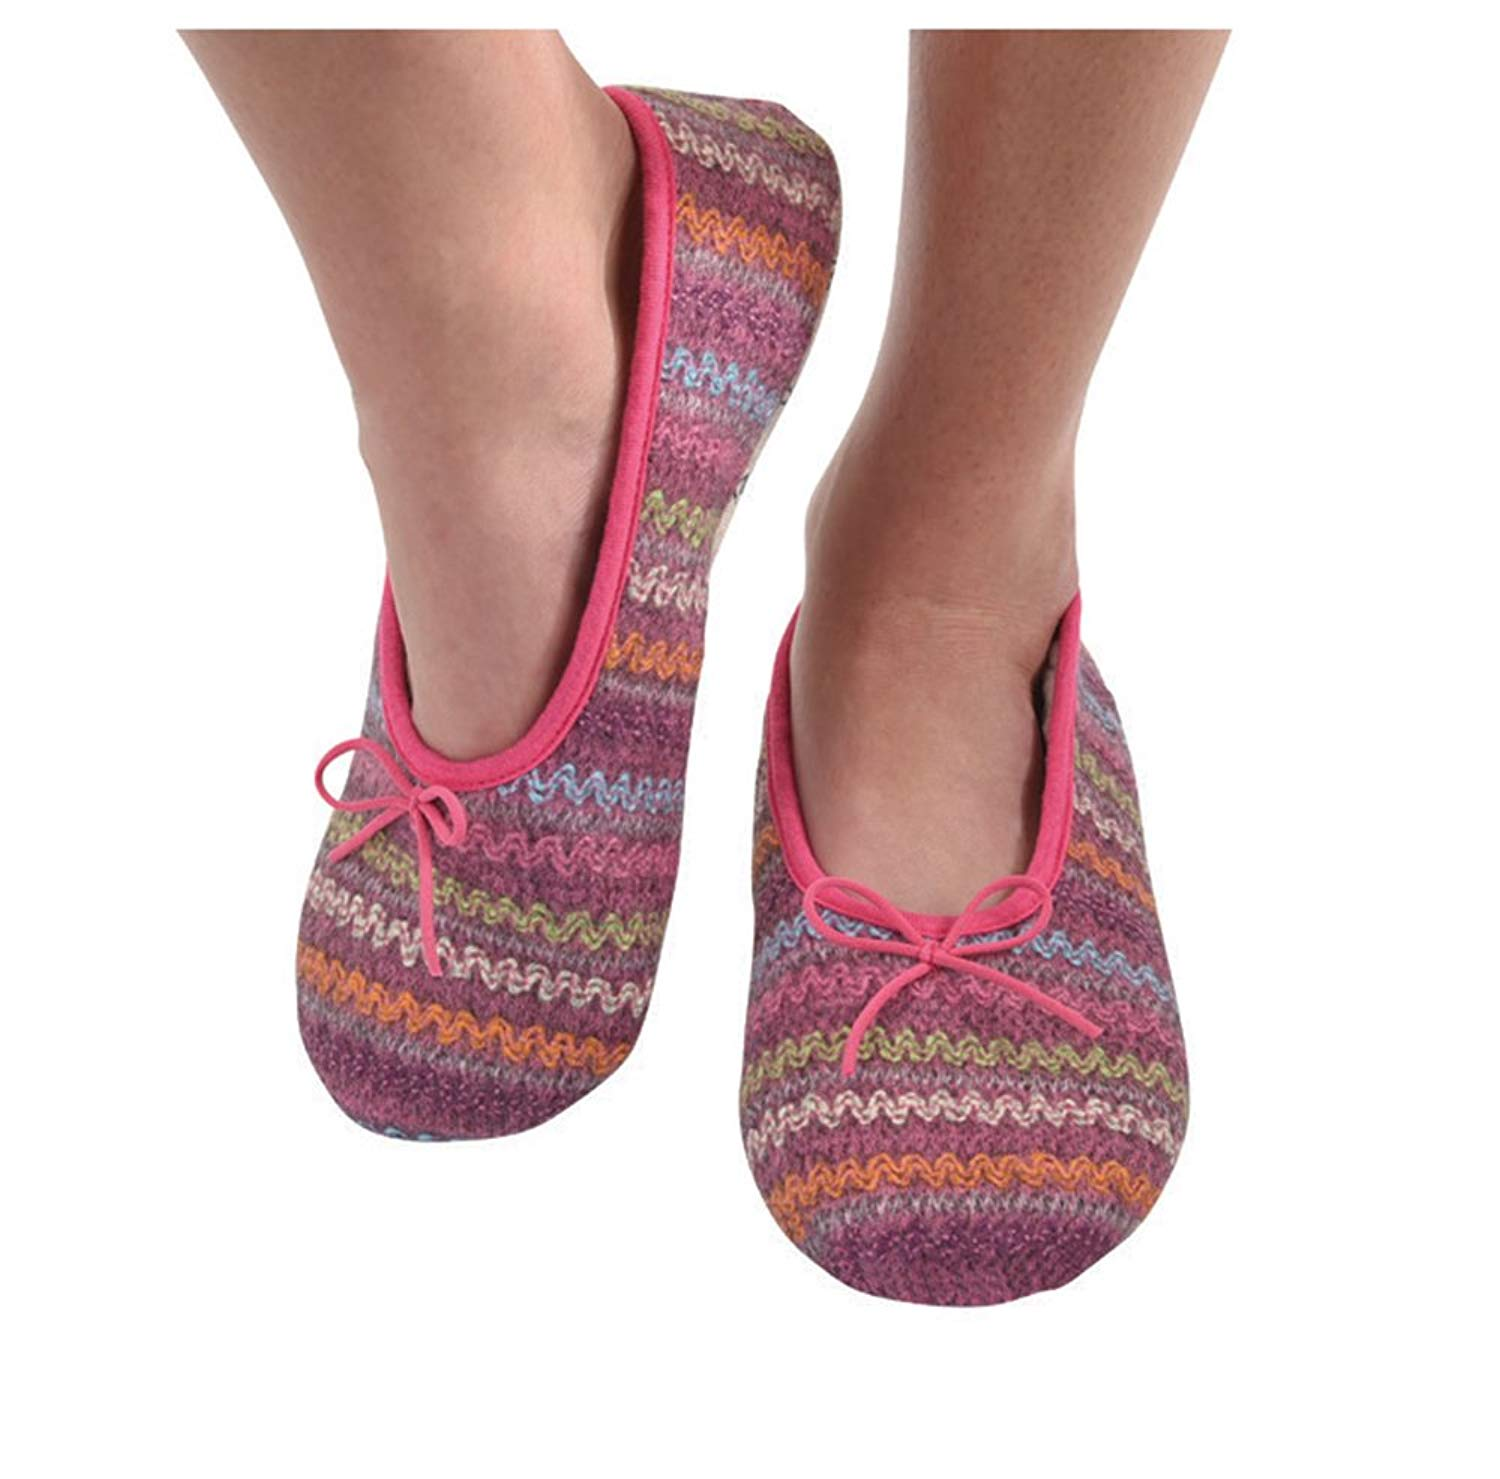 006da4dbc629 Buy Skinnies by Snoozies cozy foot covers with non-skid soles ...